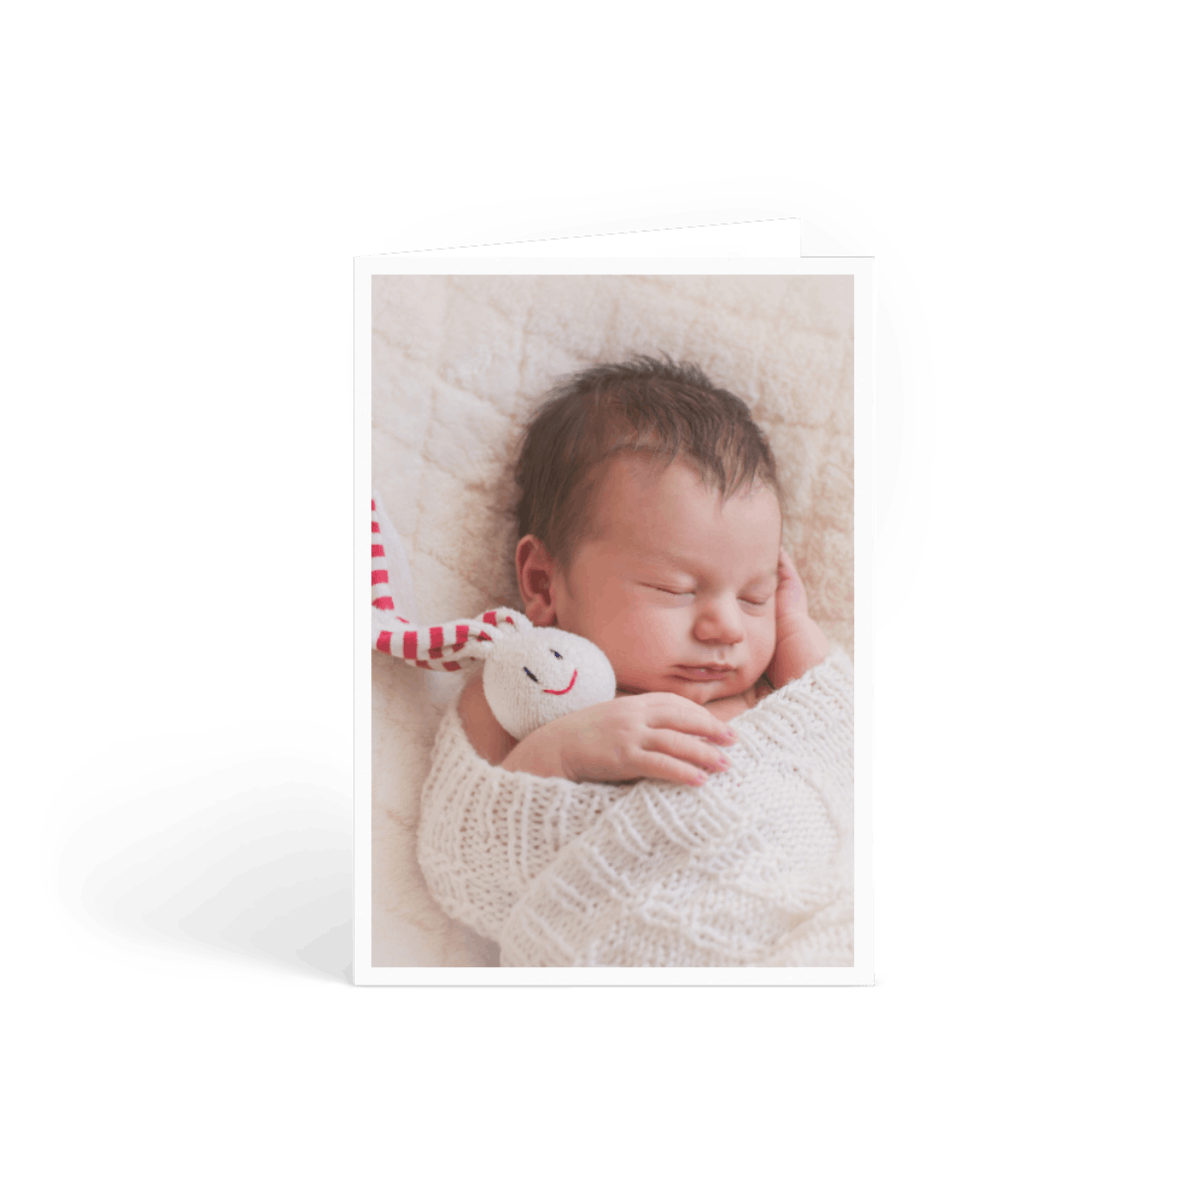 Https%3a%2f%2fwww.papier.com%2fproduct image%2f7464%2f2%2fsmall border baby 1835 front 1534857992.png?ixlib=rb 1.1